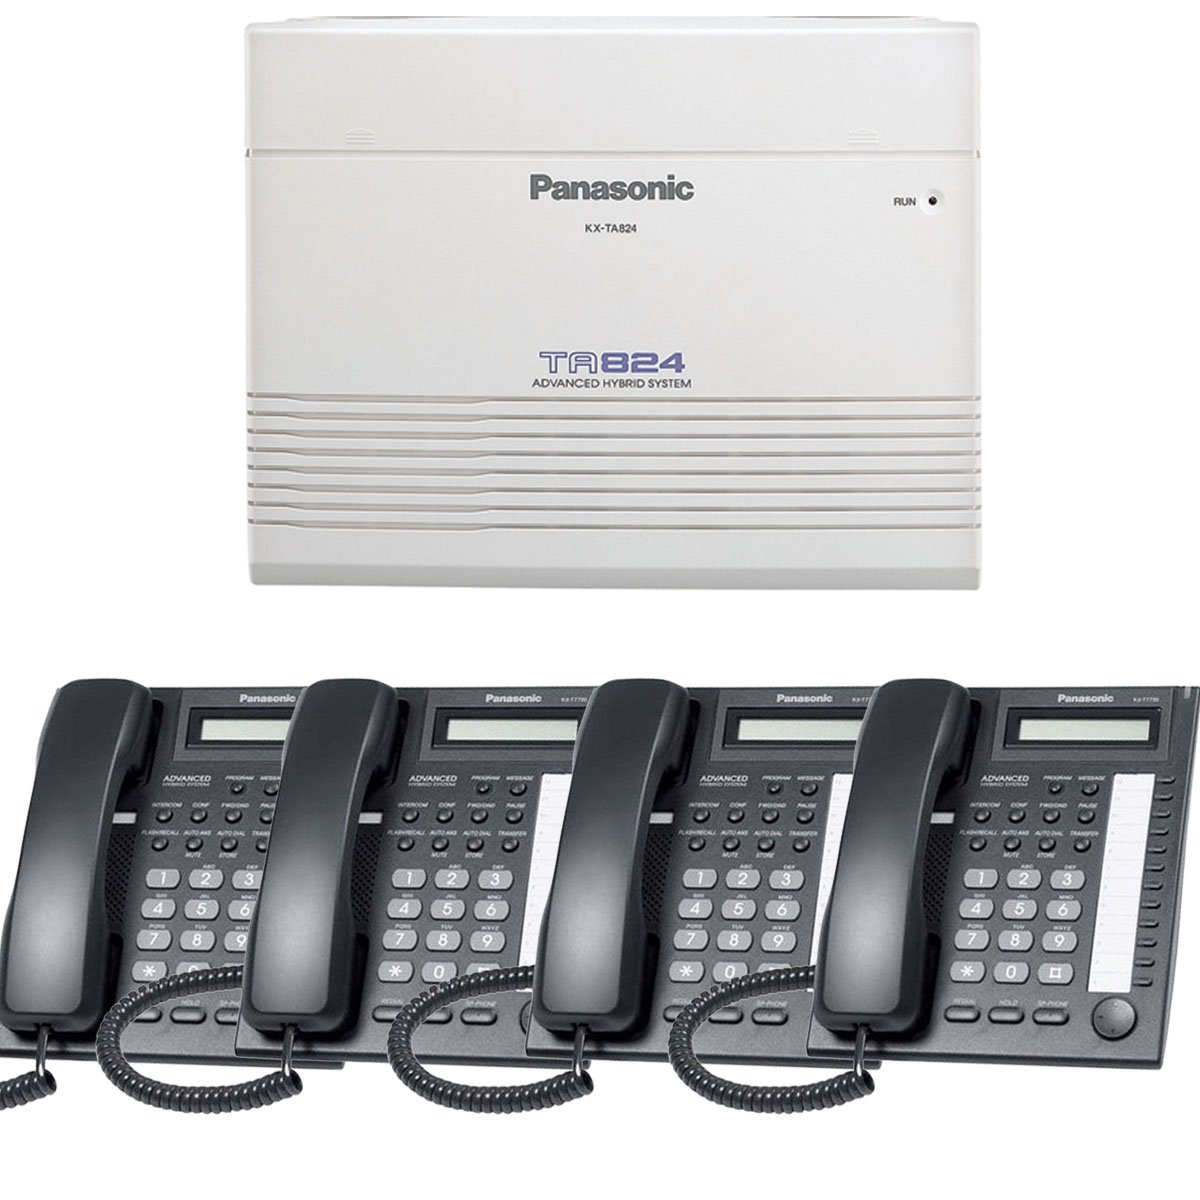 Amazon.com : Panasonic Small Office Business Phone System Bundle Brand New  includiing KX-T7730 4 Phones Black and KX-TA824 PBX Advanced Phone System  With 1 ...